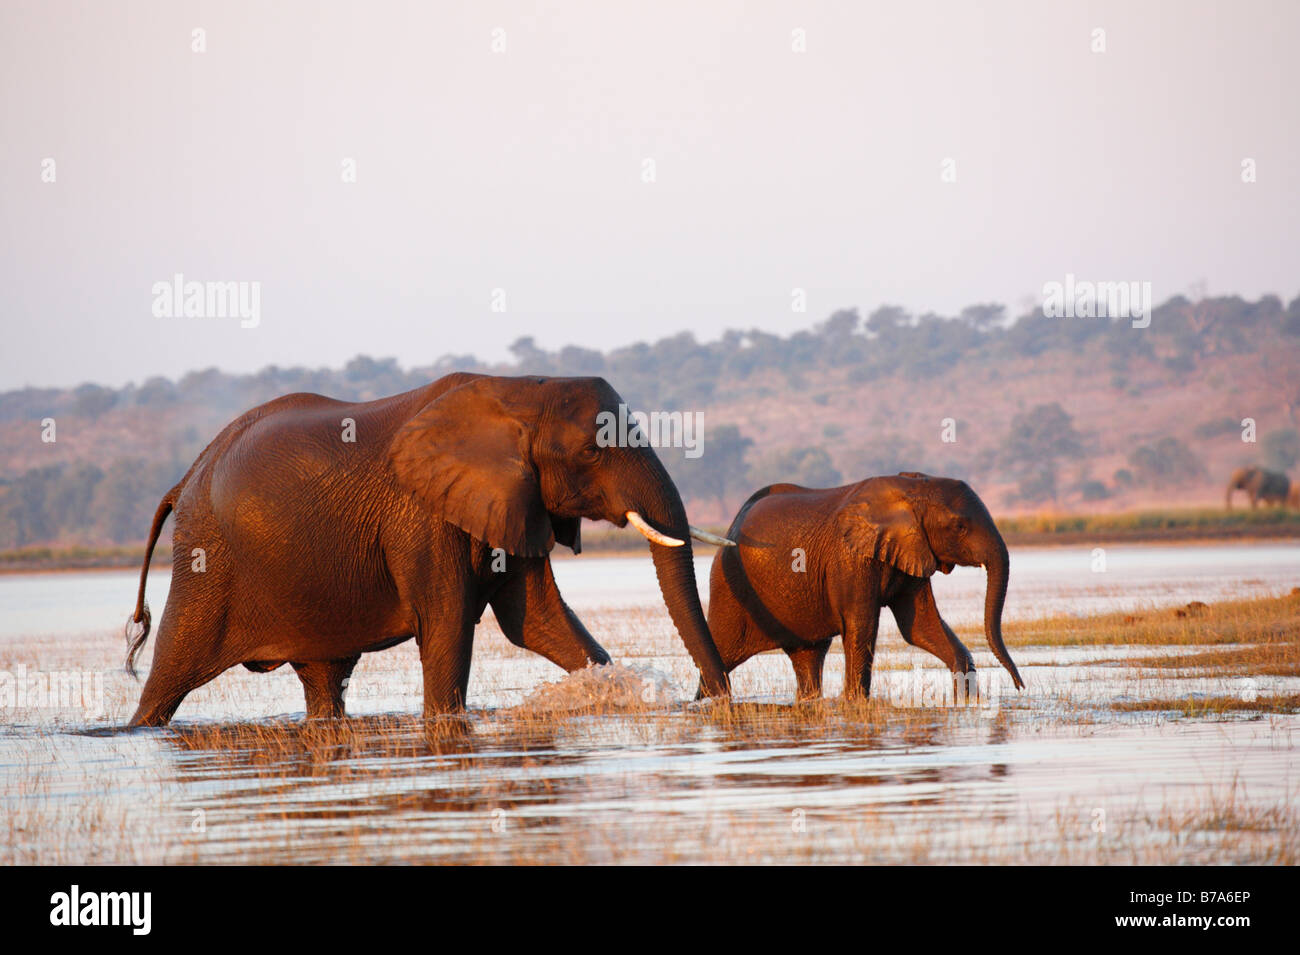 A cow elephant with calf at it's side emerging from the Chobe River after crossing - Stock Image